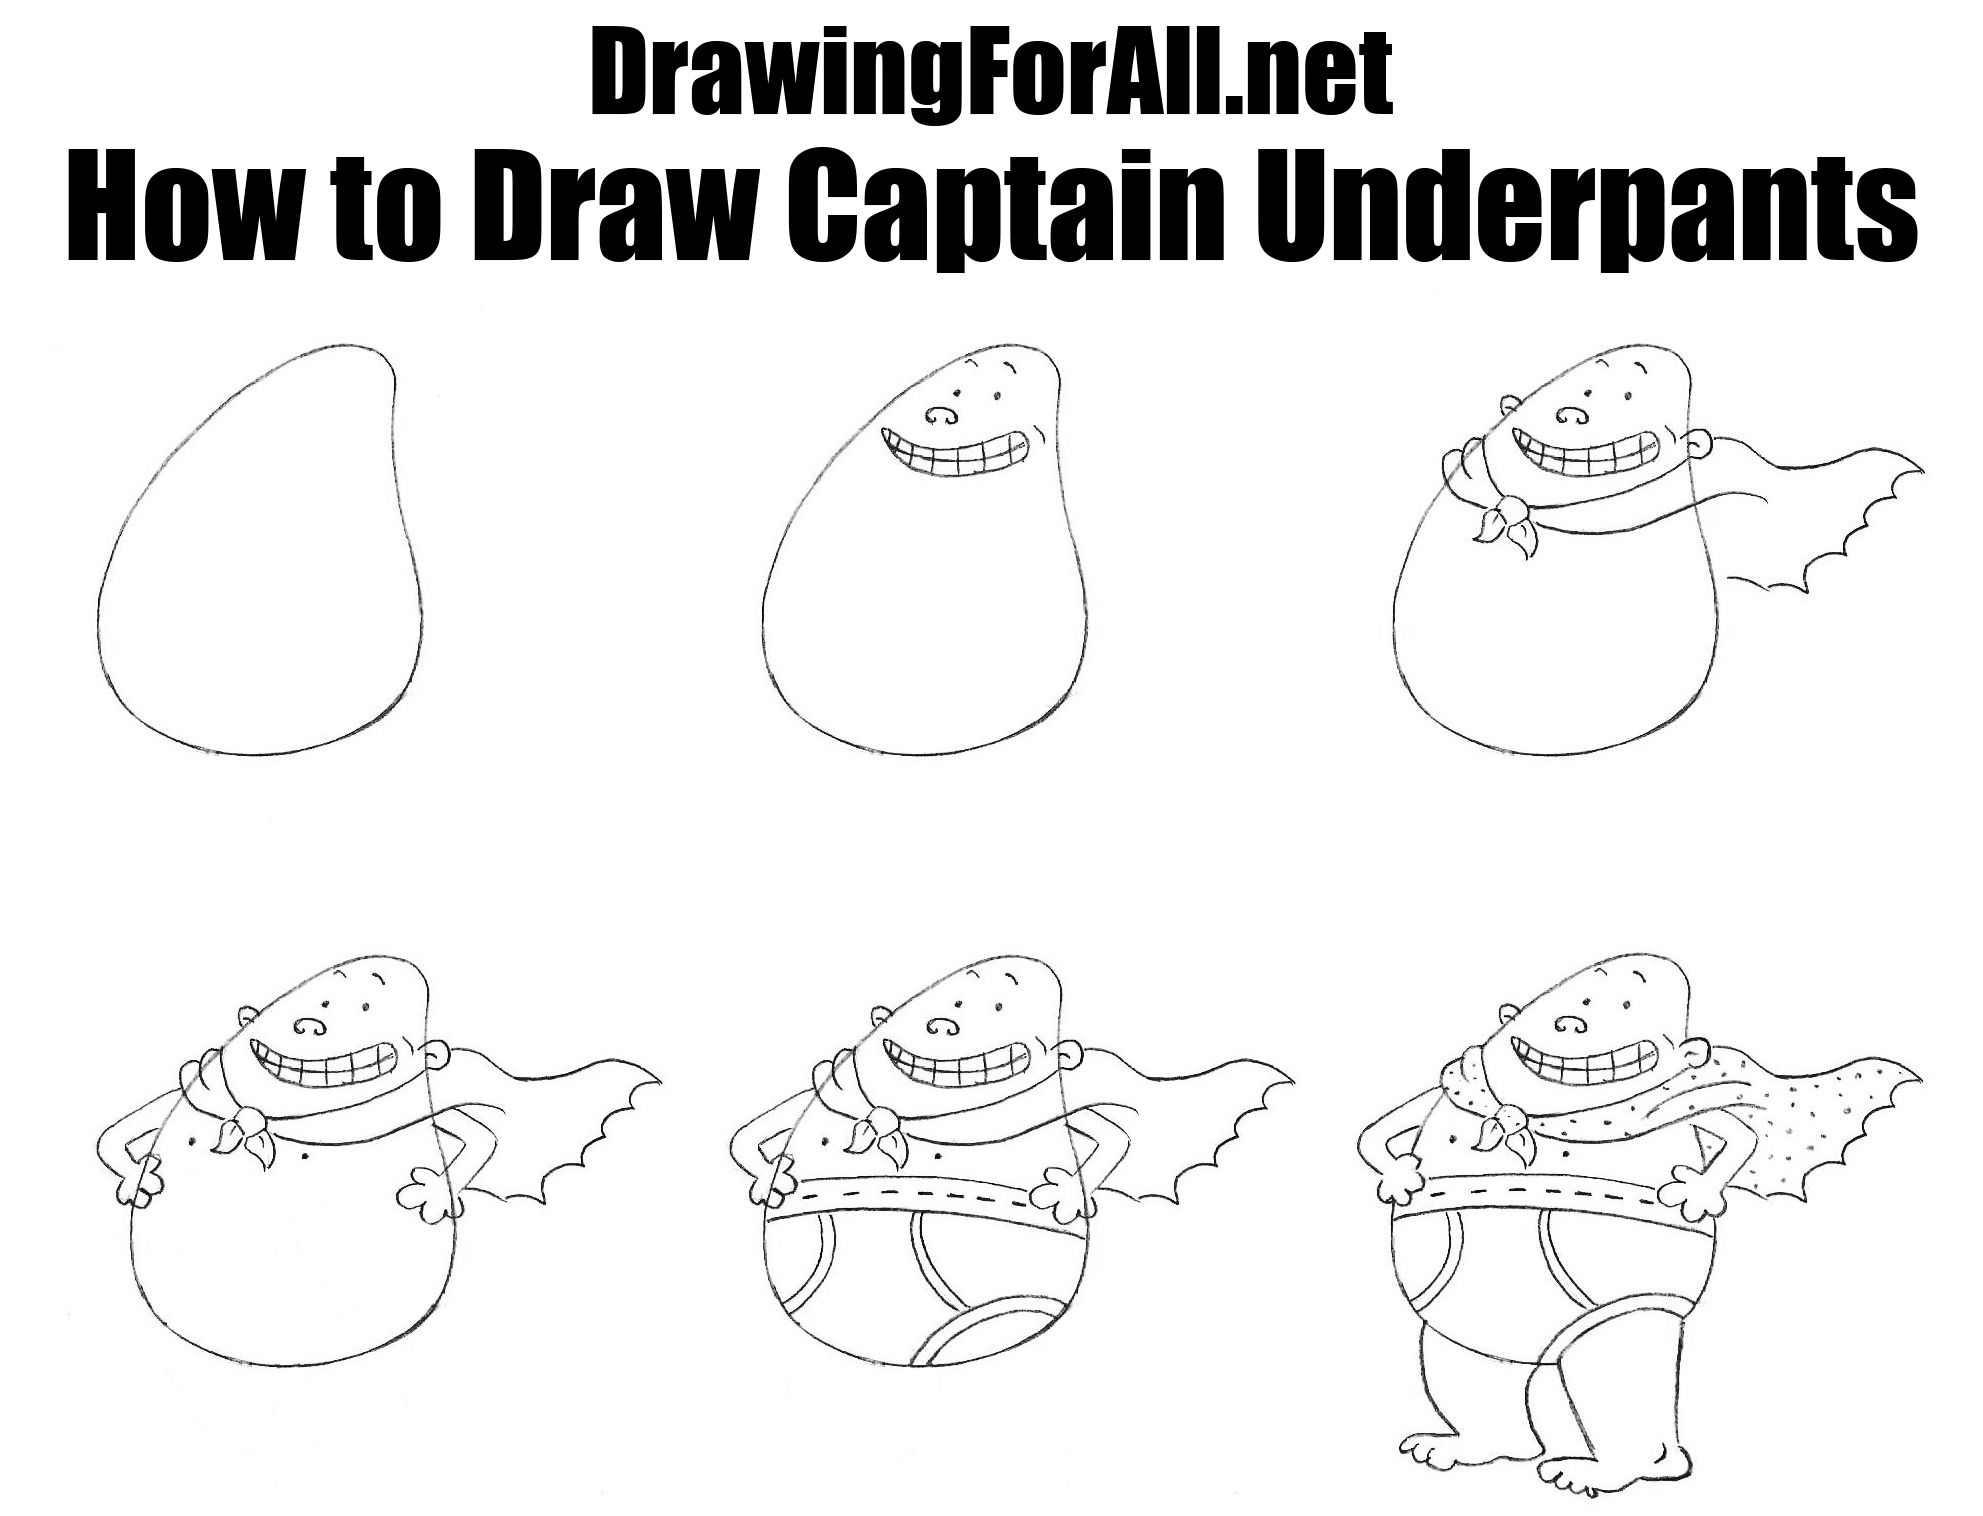 How To Draw Captain Underpants Captain Underpants Drawing Lessons Learn To Draw